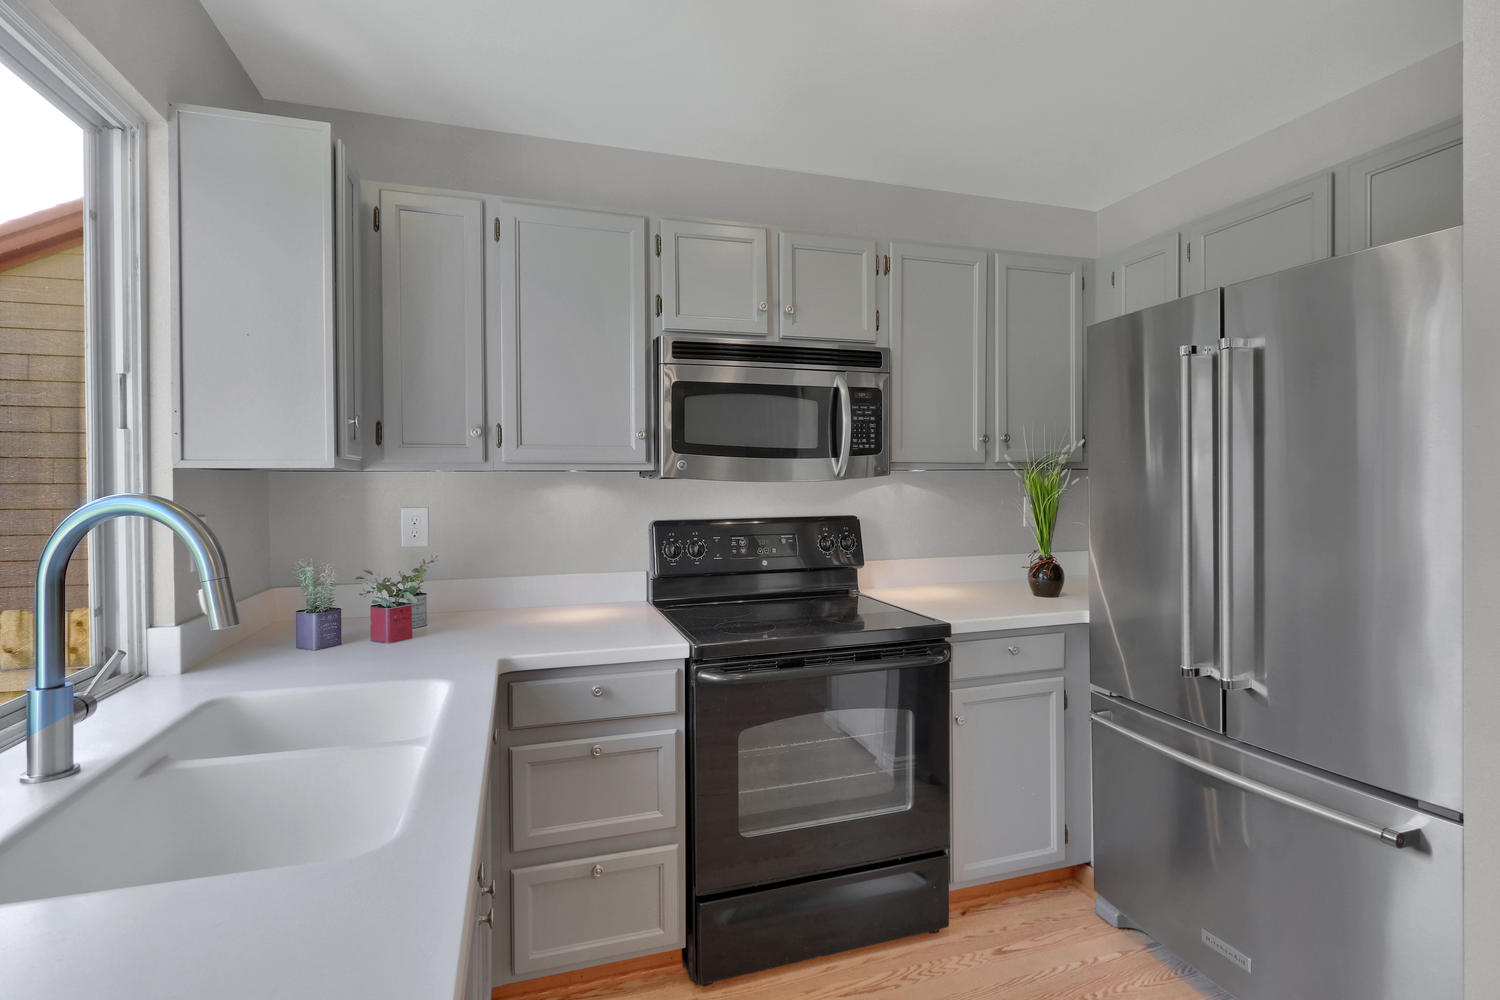 11246 W 104th Ave Westminster-large-012-013-Kitchen-1500x1000-72dpi.jpg